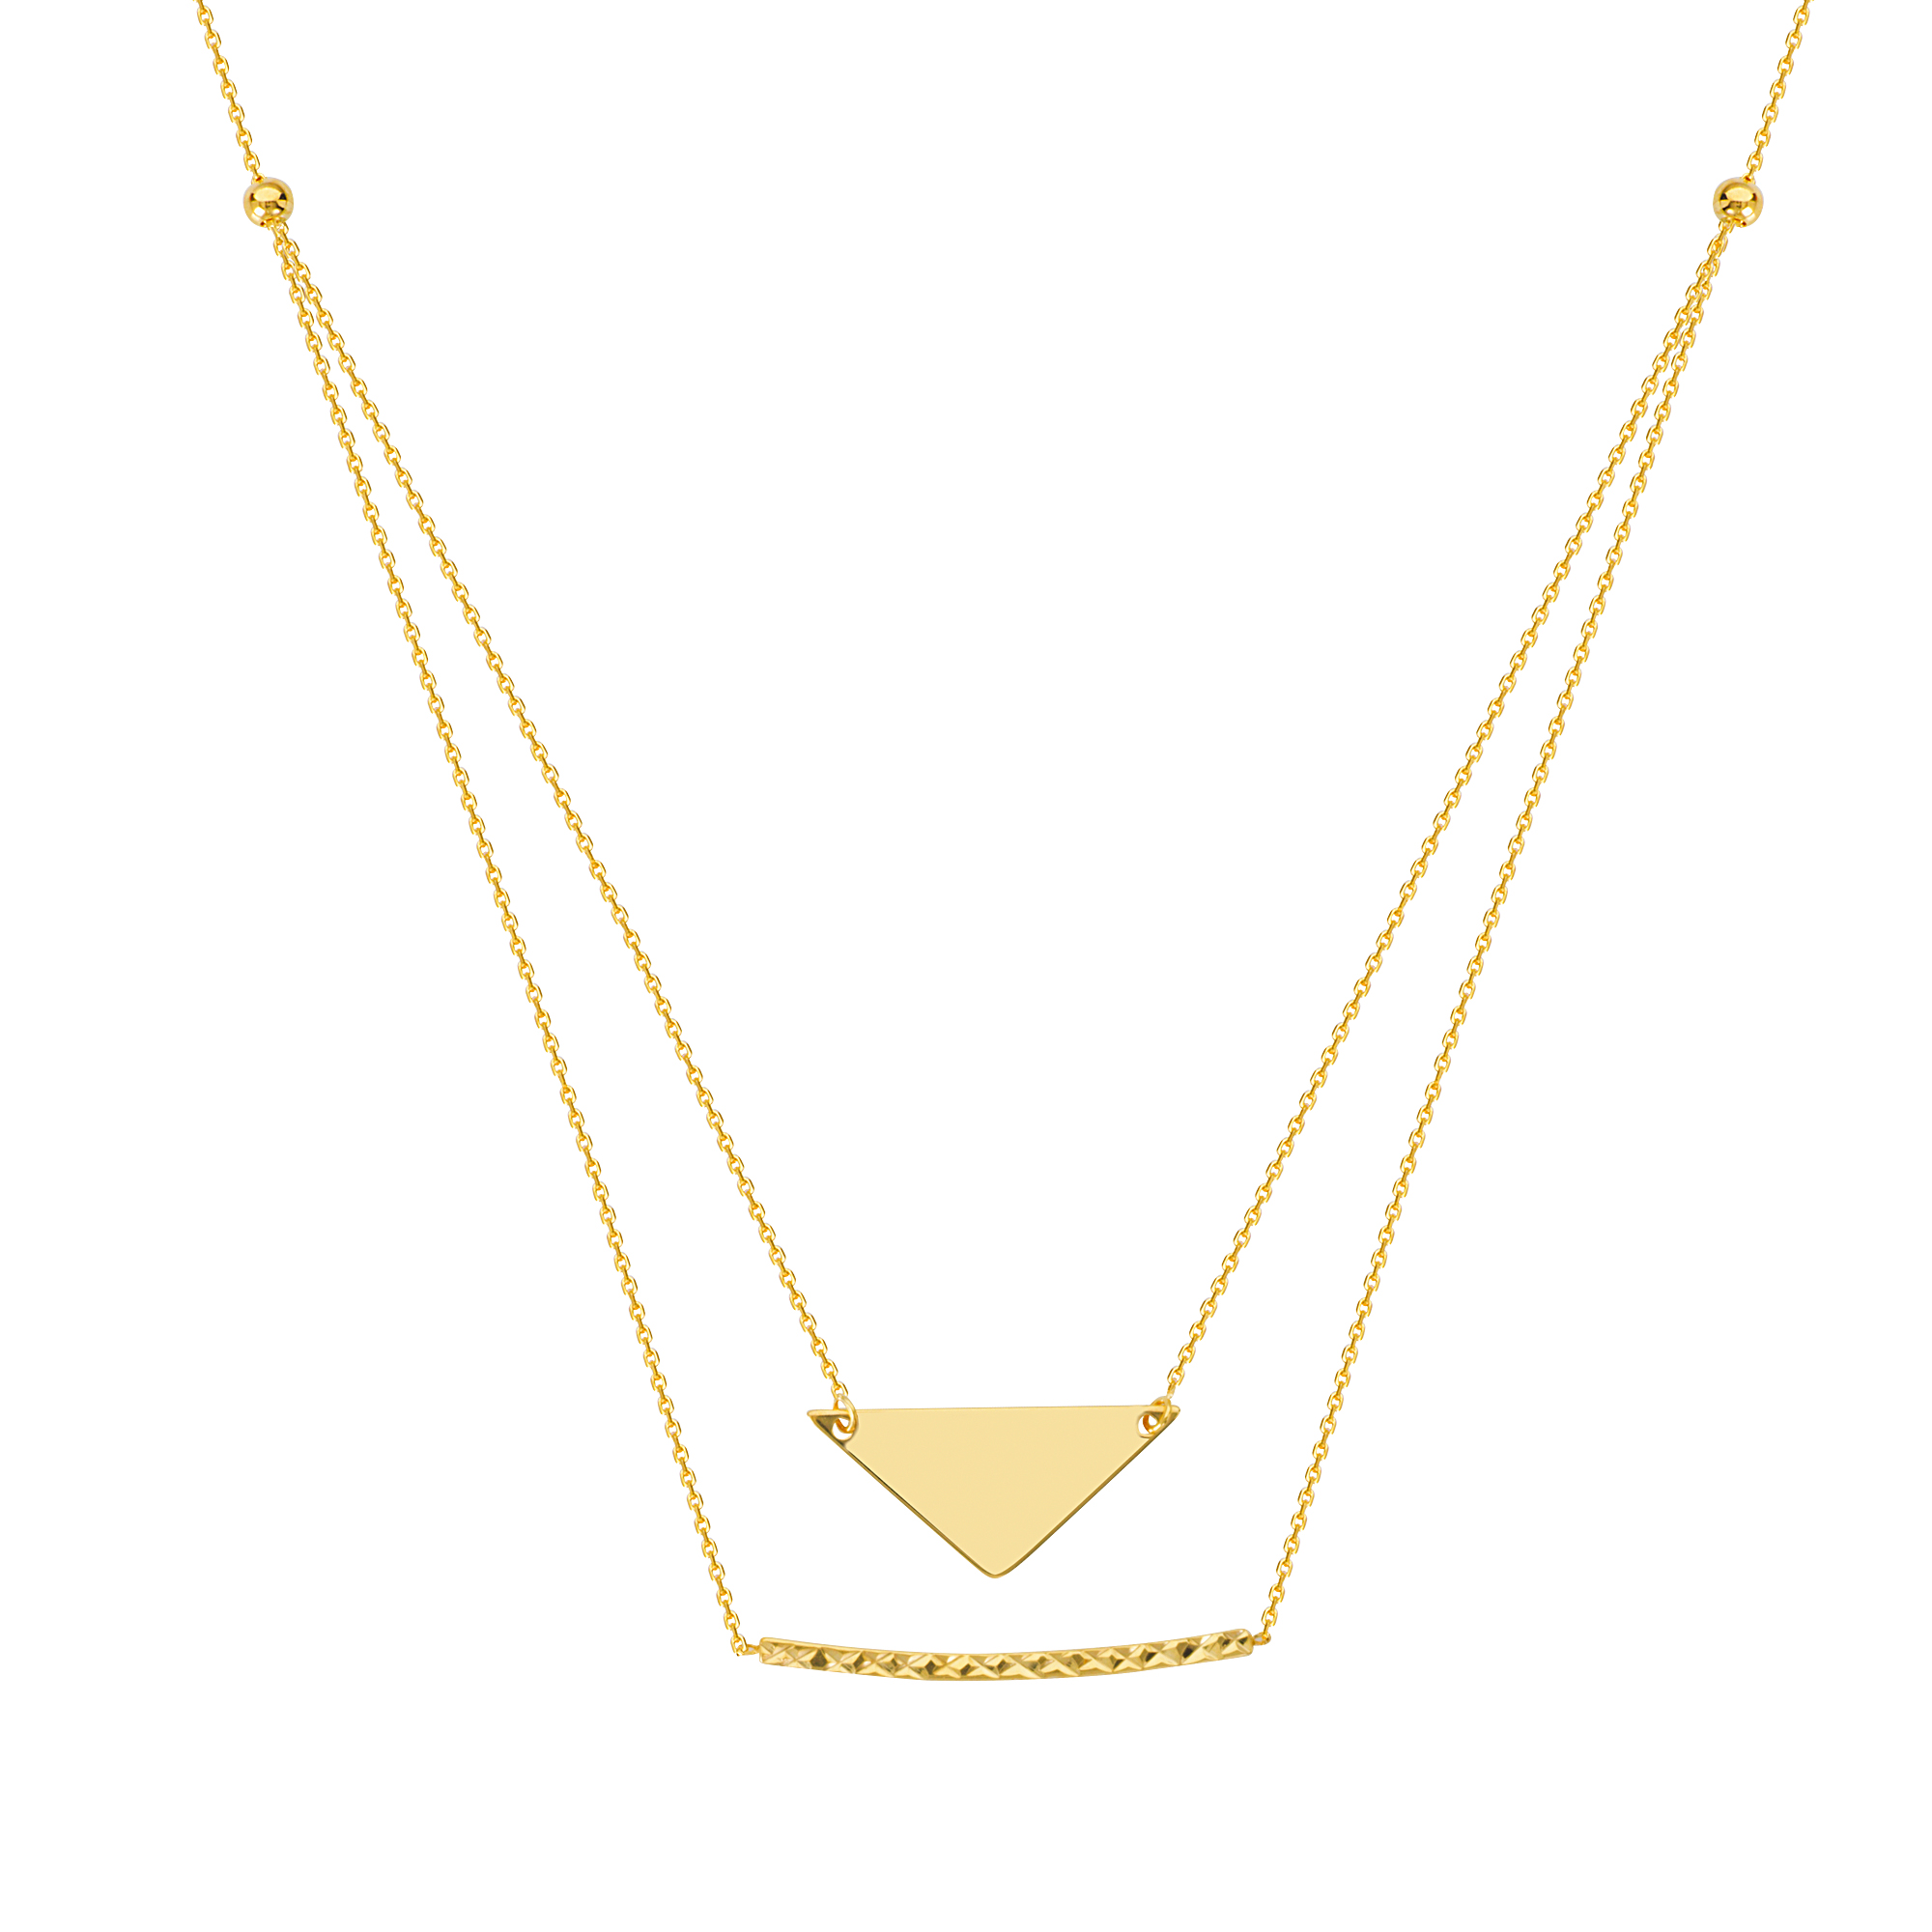 Stability And Balance  Necklace, 14Kt Gold  Stability And Balance Necklace  18